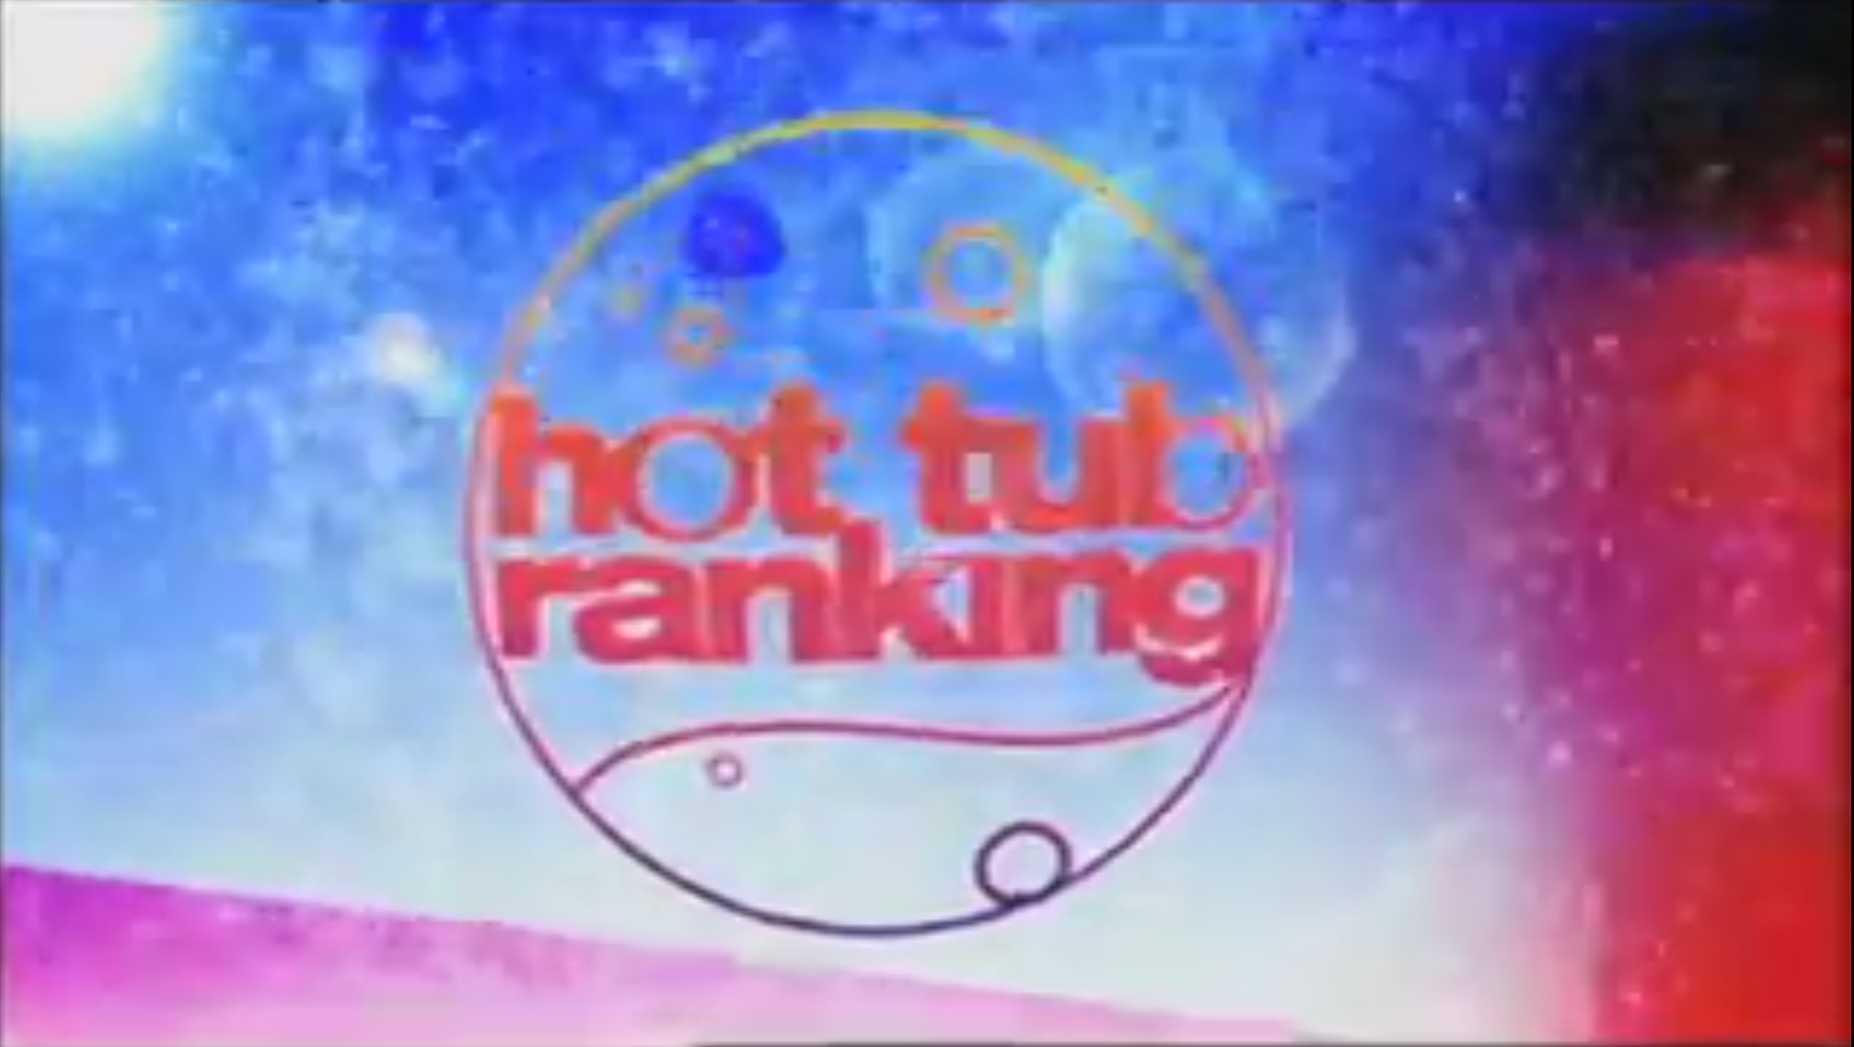 Hot Tub Ranking